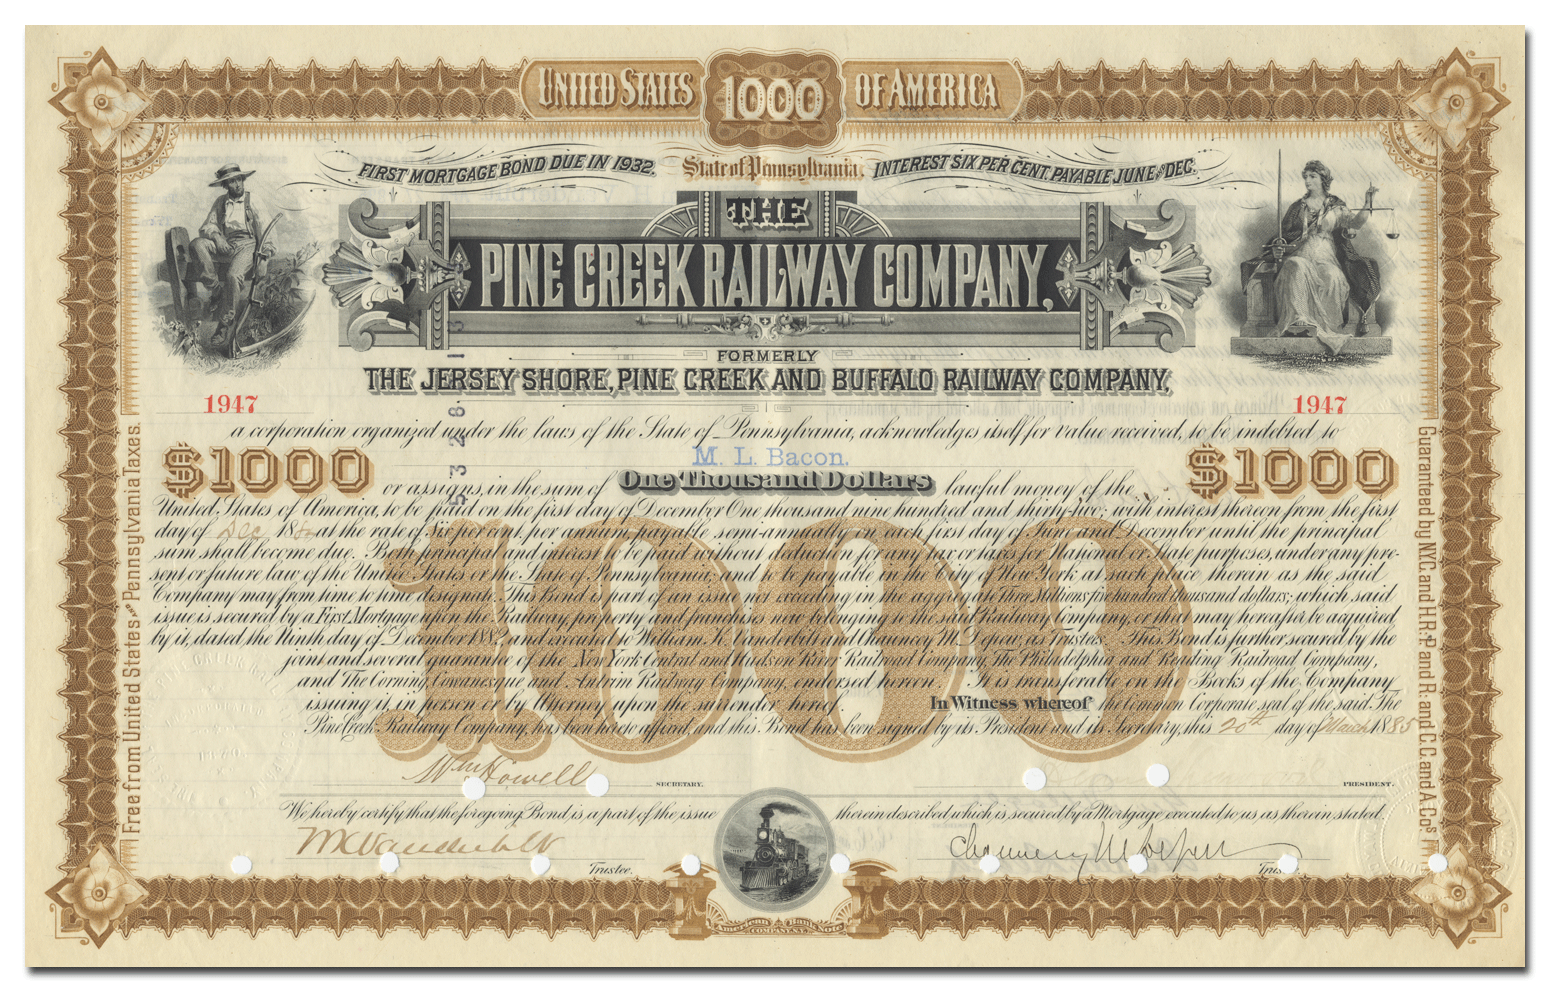 Pine Creek Railway Company Bond Signed by DePew and